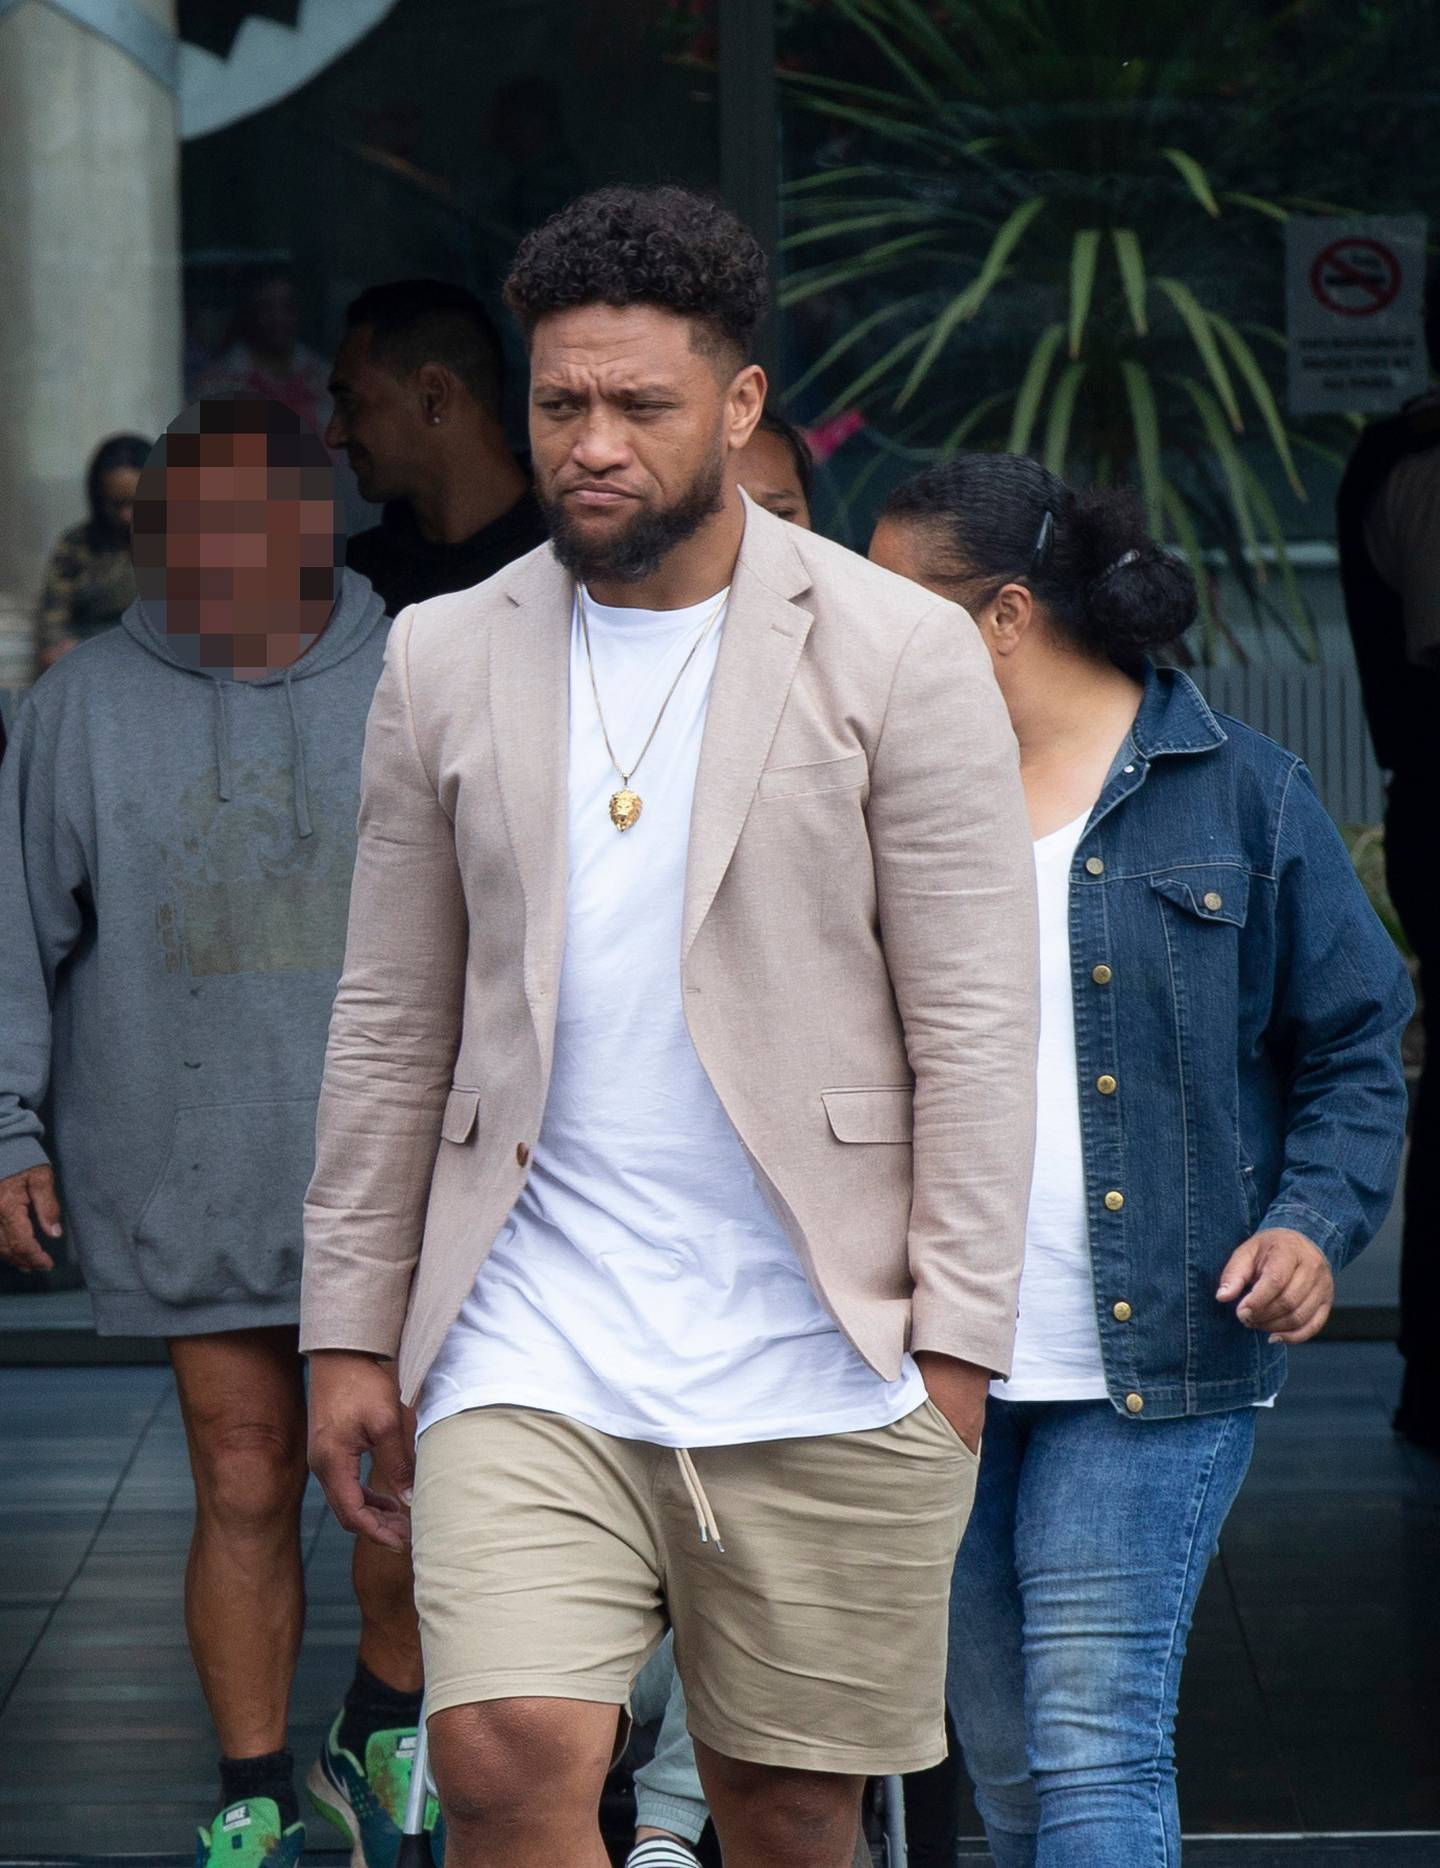 Manu Vatuvei outside the Manukau District Court after an appearance for charges of importing and supplying methamphetamine in December 2019. Photo / Leon Menzies